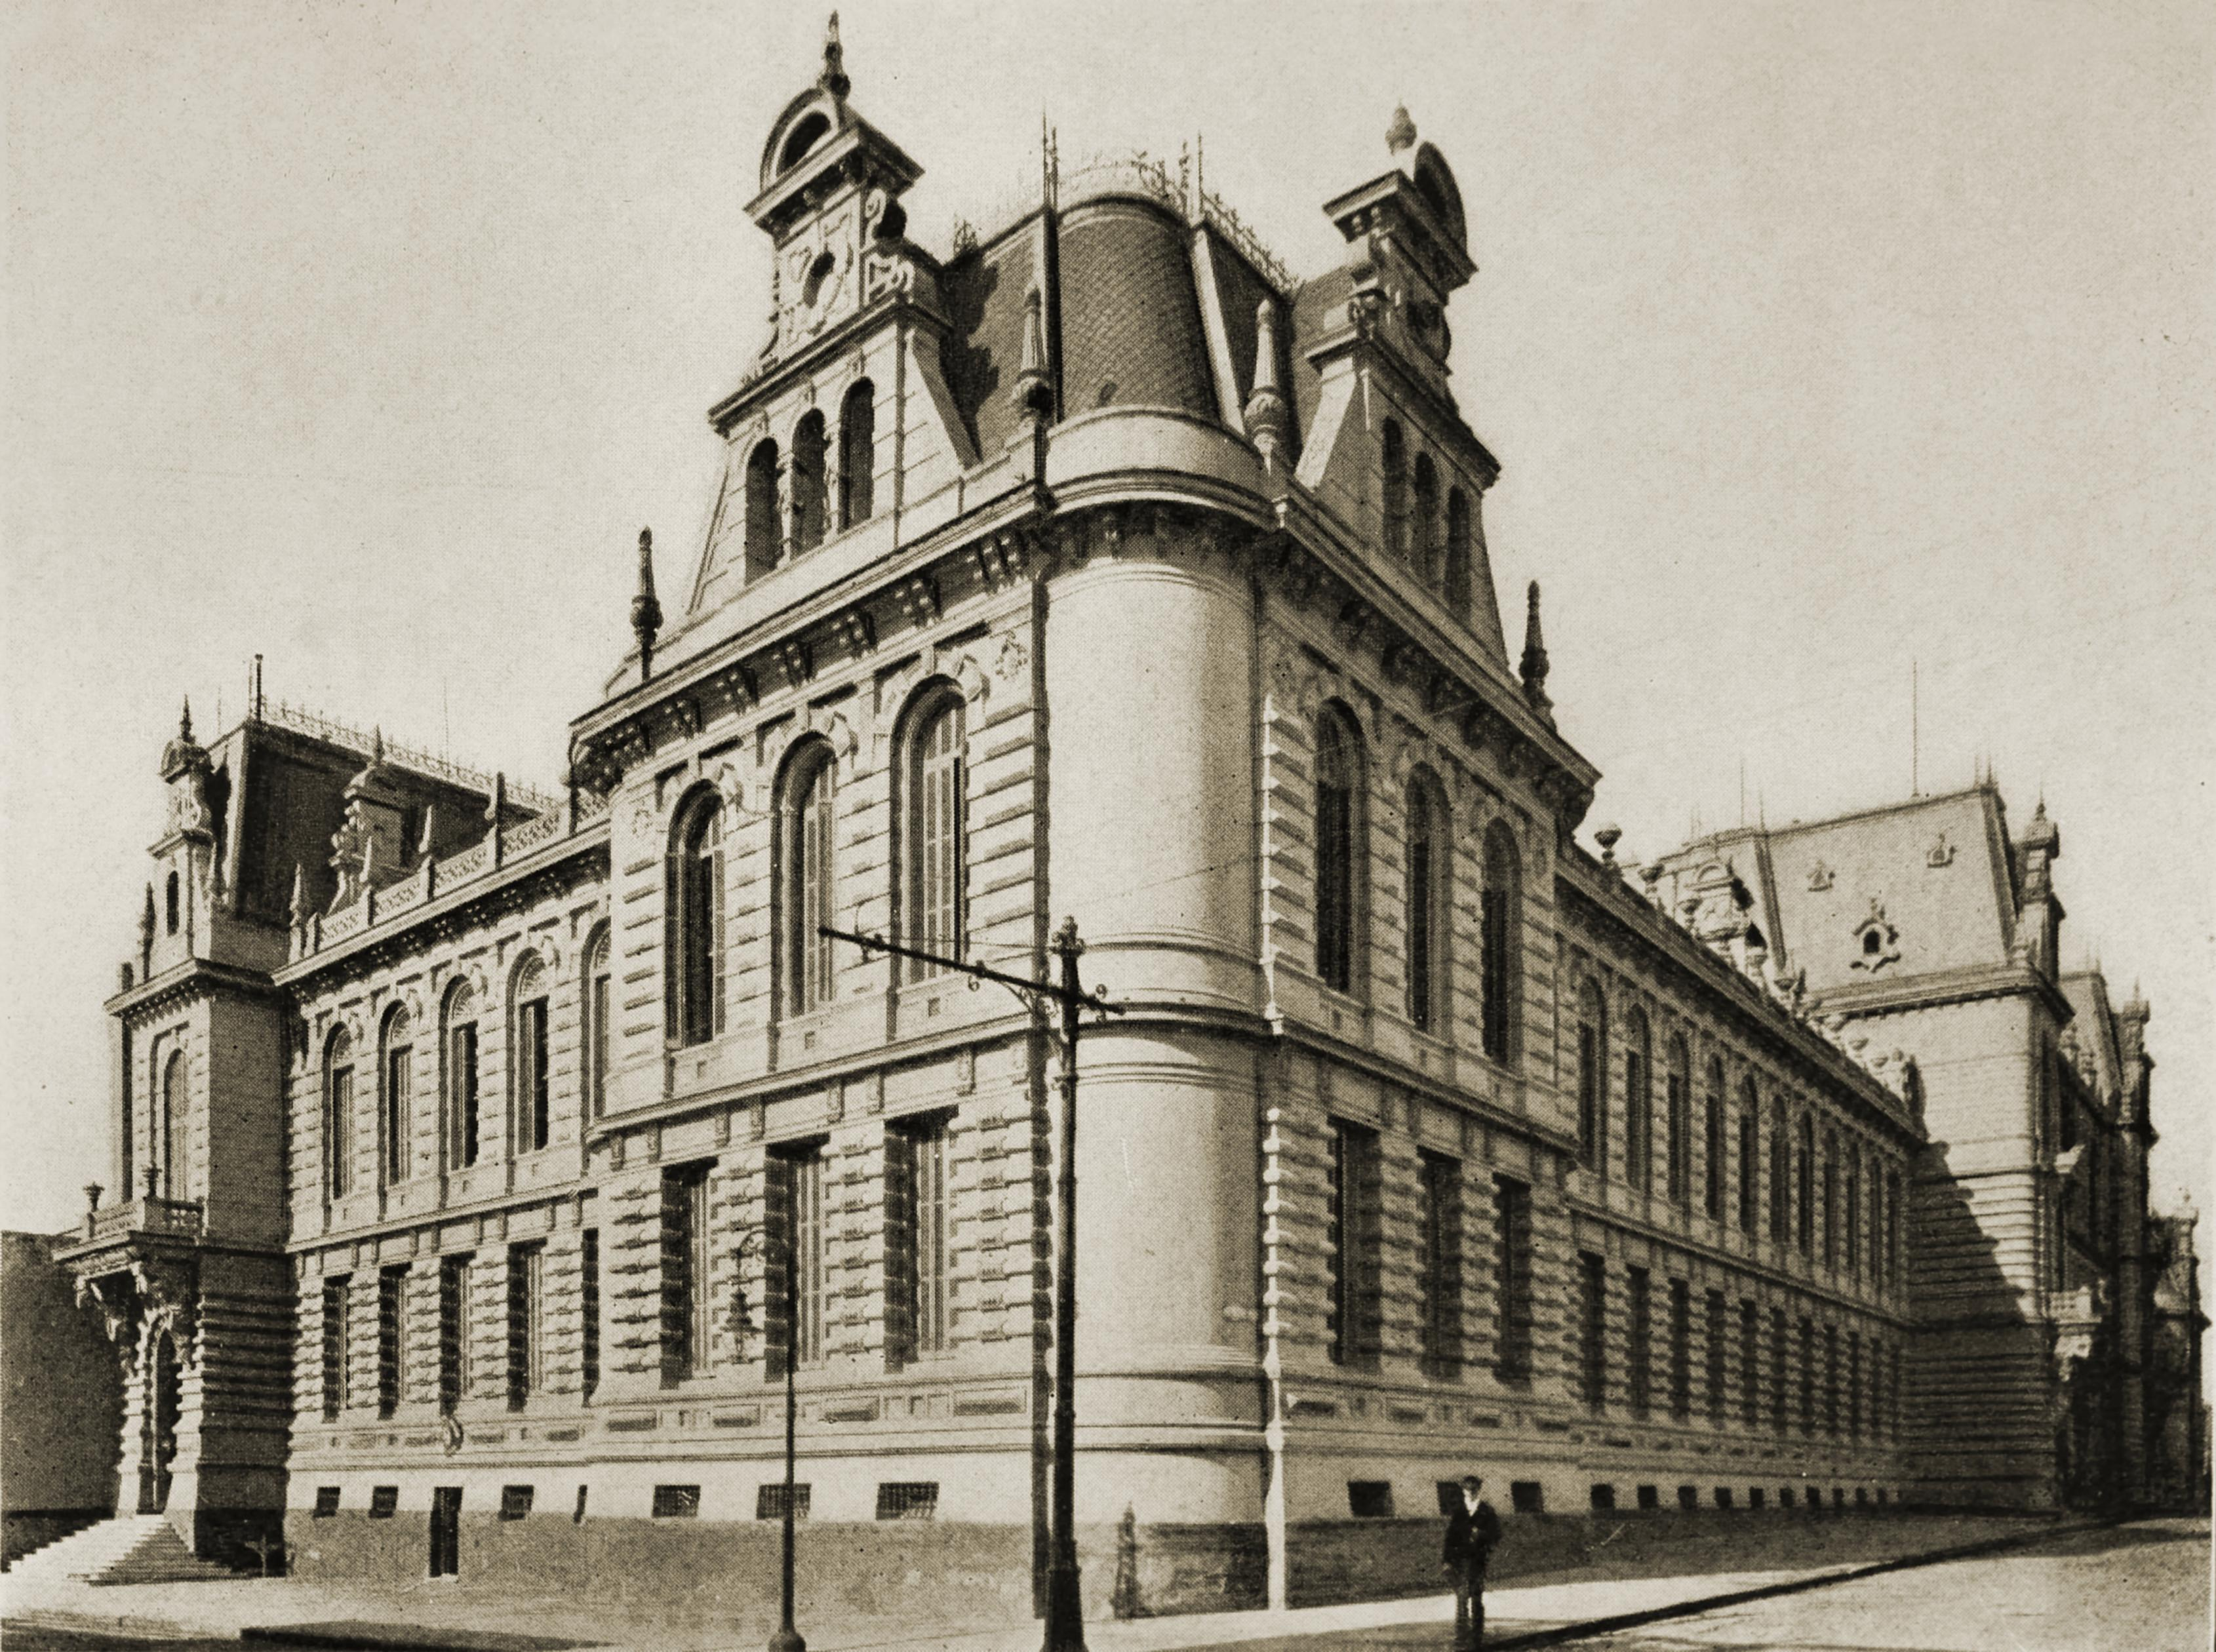 Pizzurno Palace, Buenos Aires, Argentina about 1917